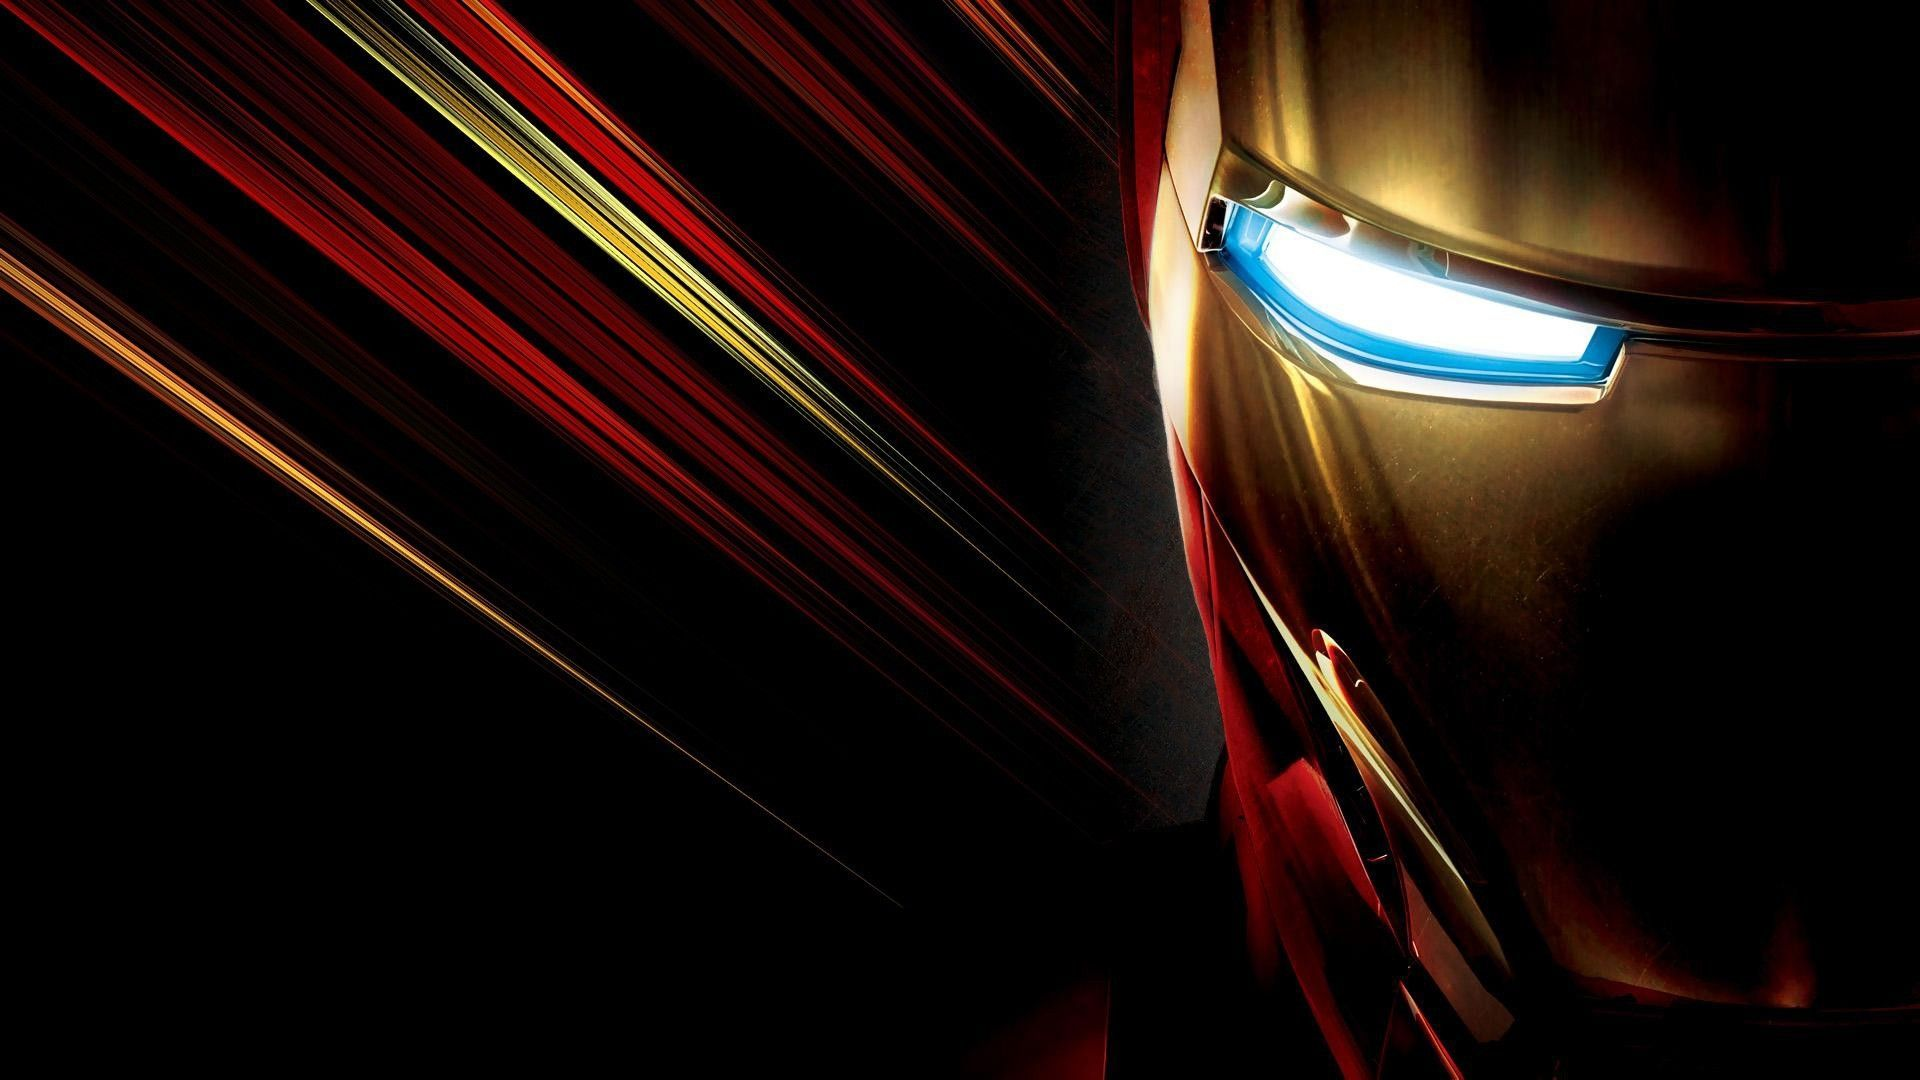 Iron Man 4k Hd 3d Wallpapers Fondosdepantalla Top 4khd3d Fondosdepantallatop Iron Man Wallpapers In 2020 Iron Man Wallpaper Iron Man Hd Wallpaper Iron Man